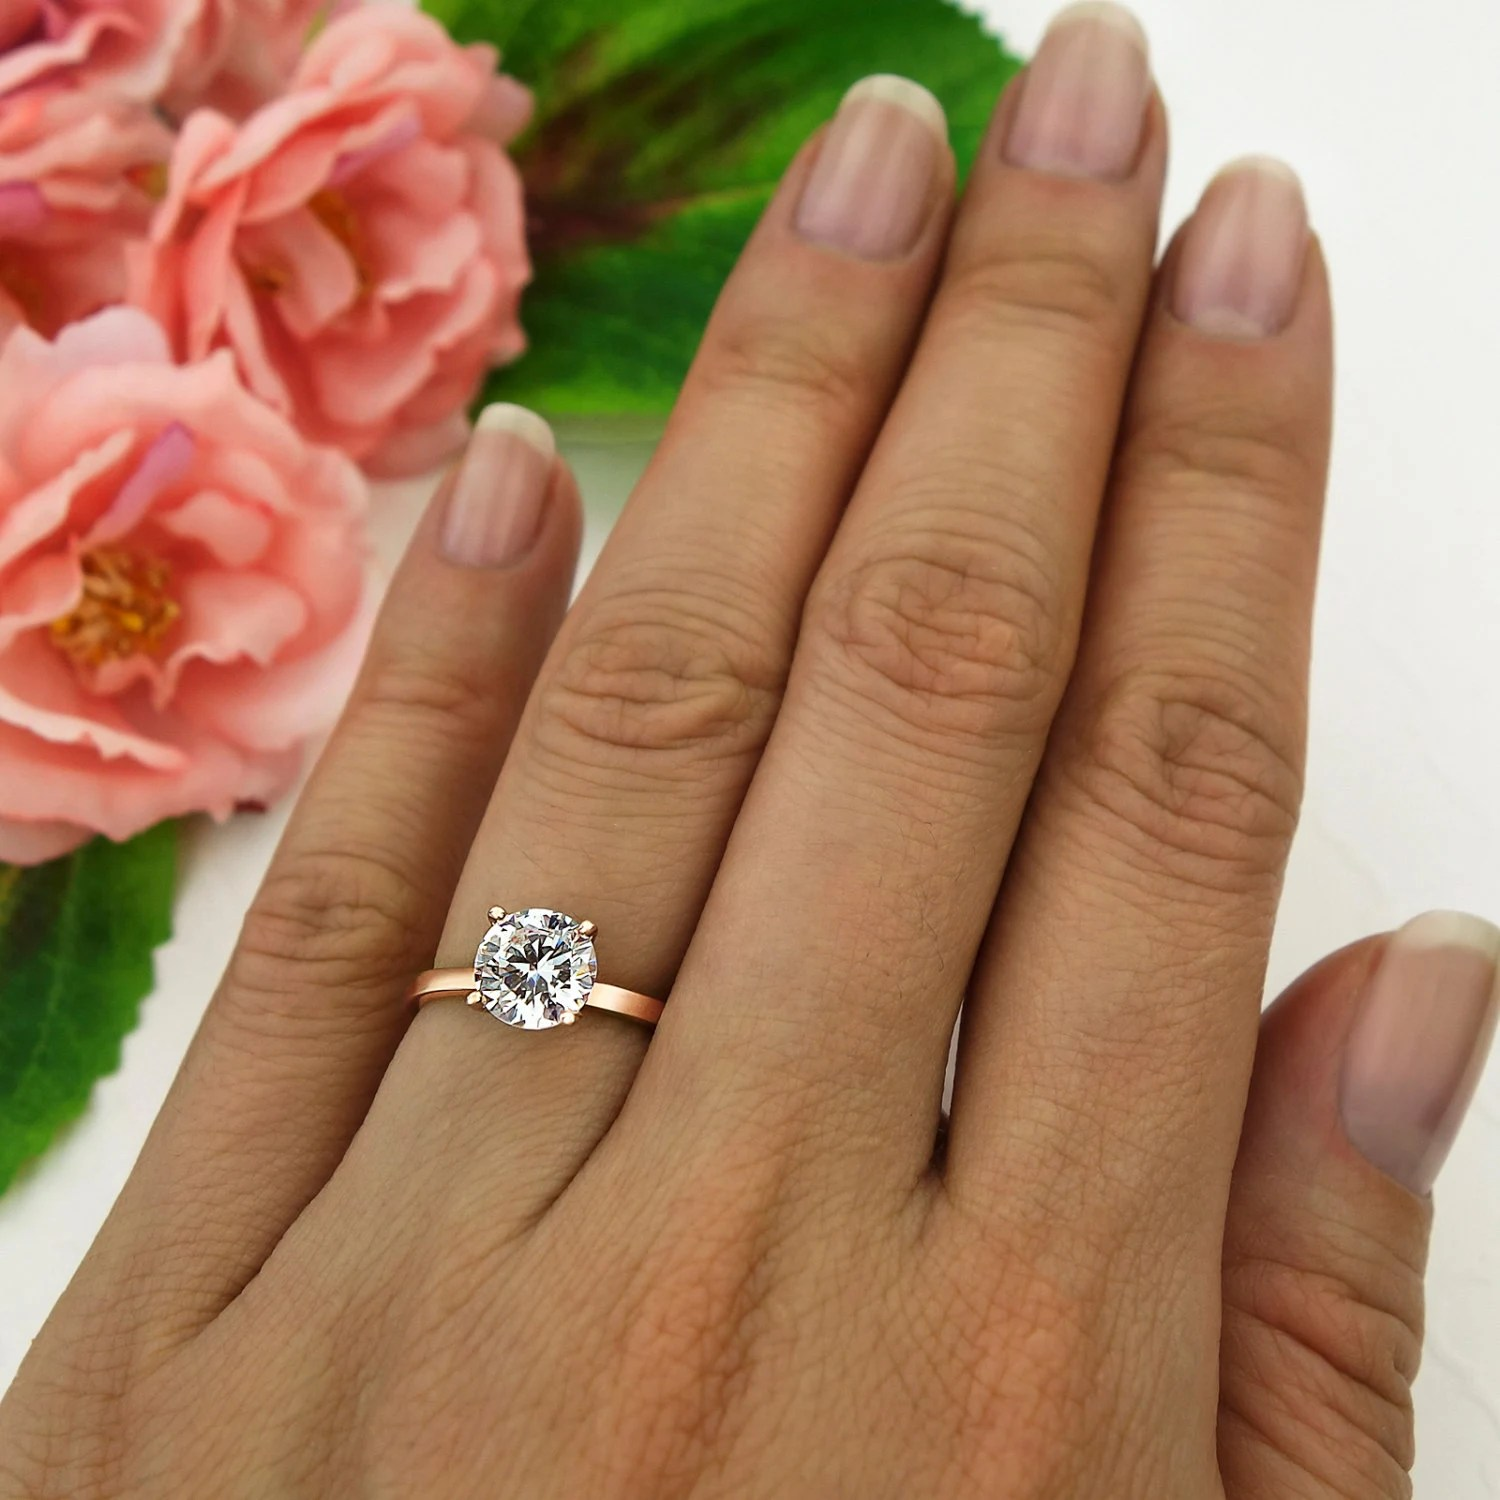 15 ct Engagement Ring Solitaire Ring Man Made Diamond